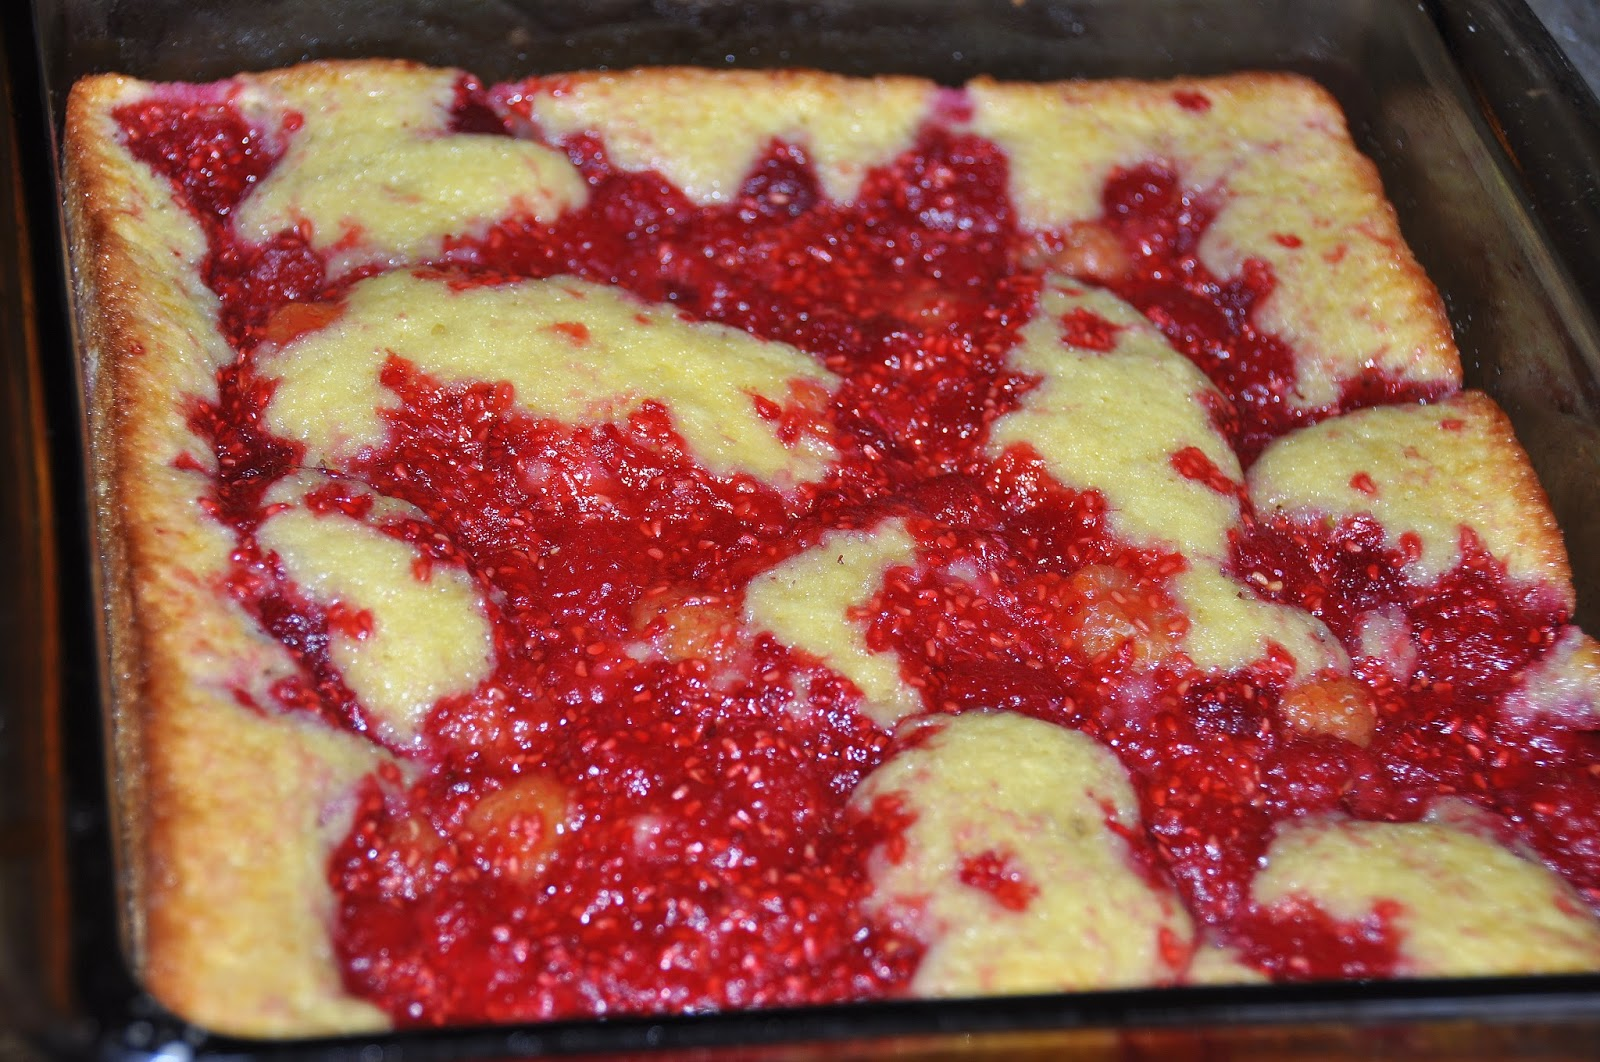 Raspberry Cobbler just out of the oven